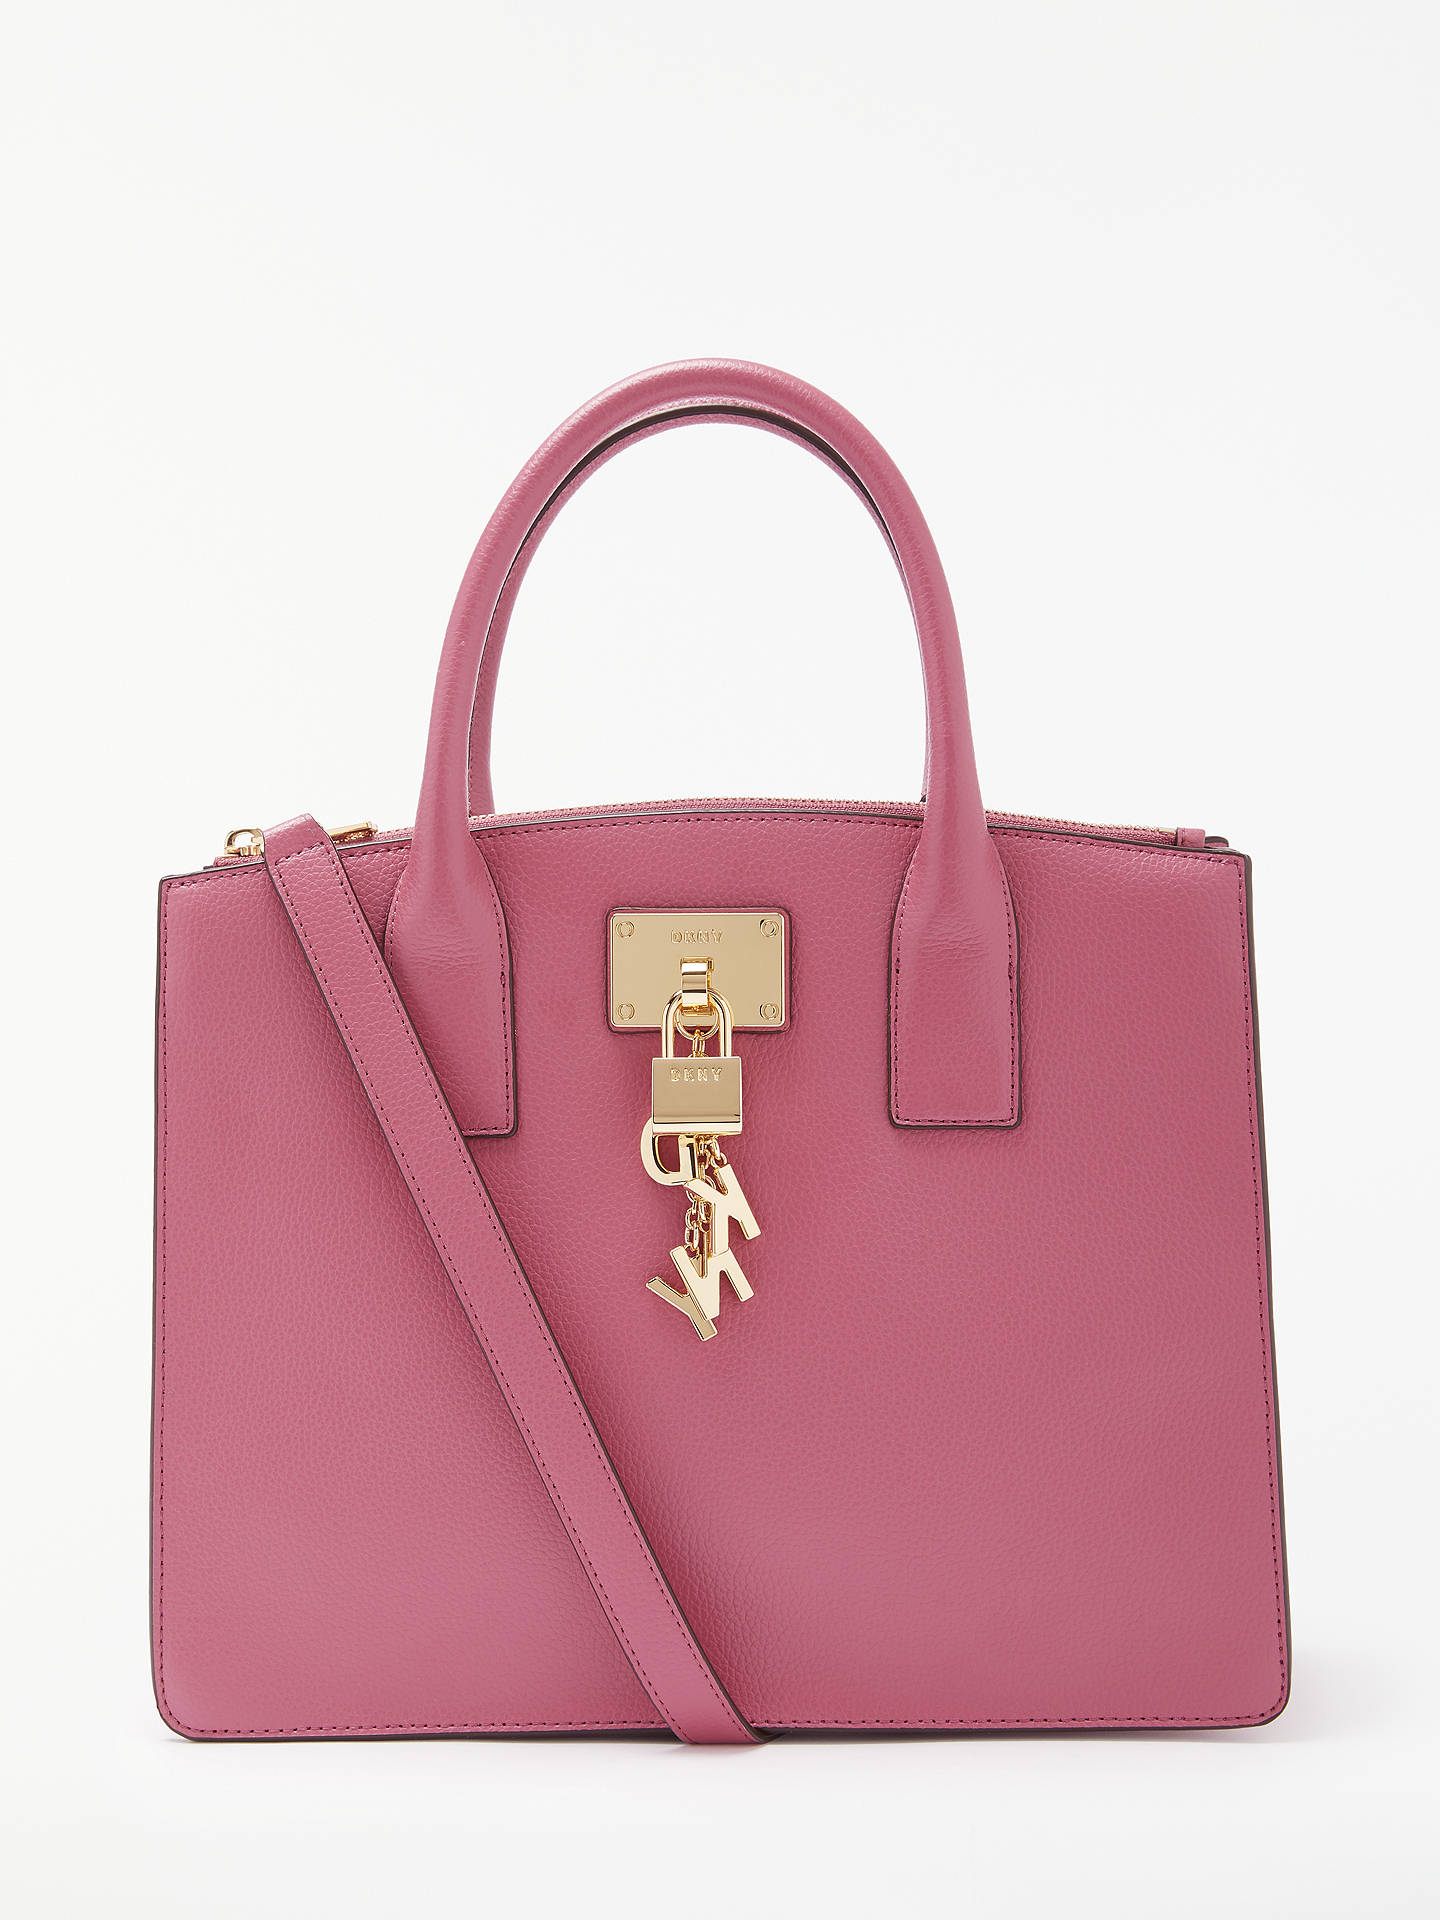 654f24783 Buy DKNY Elissa Charm Detail Leather Tote Bag, Hot Pink Online at  johnlewis.com ...